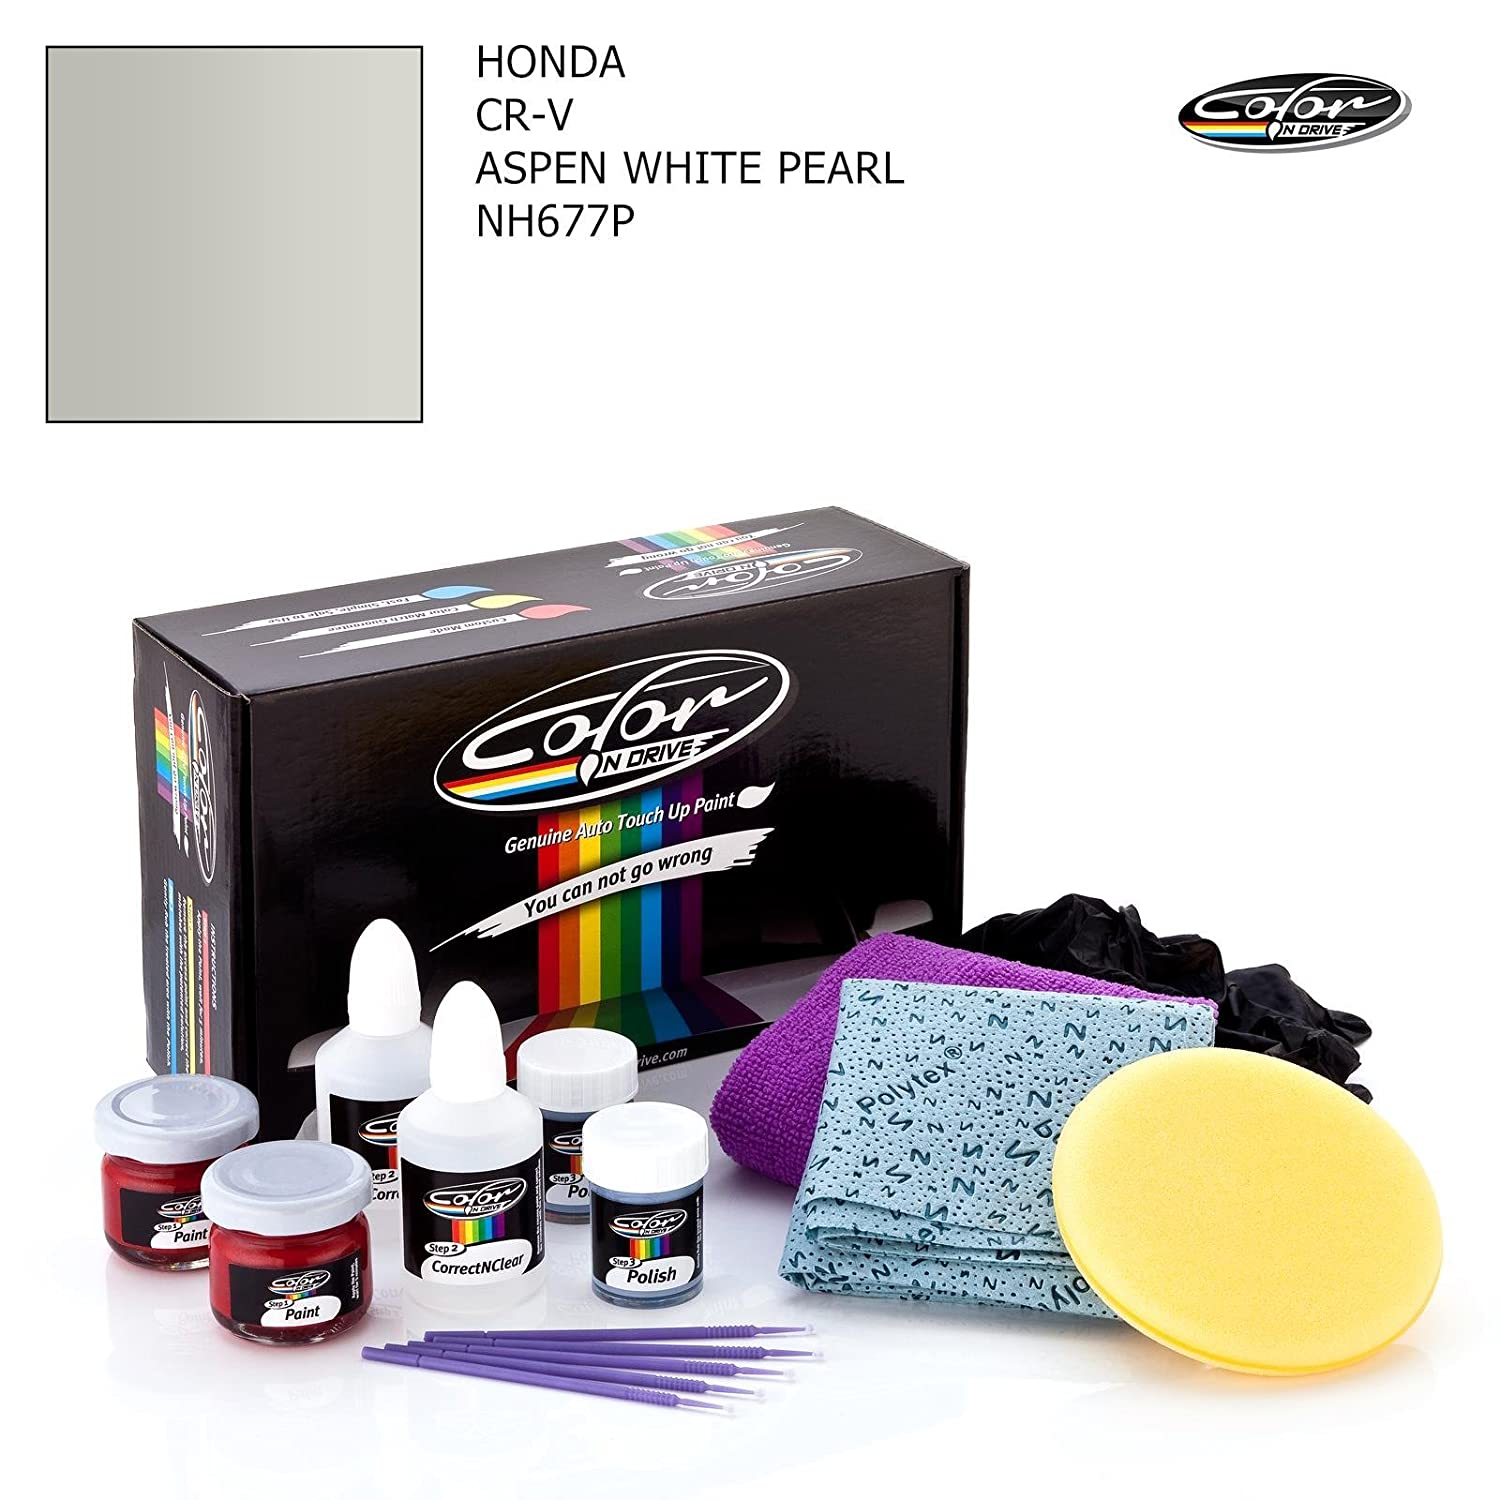 up absolute touch motorcraft brush black ub oem honda itm ud small fix ford scratch ua fordtouchuppaint paint